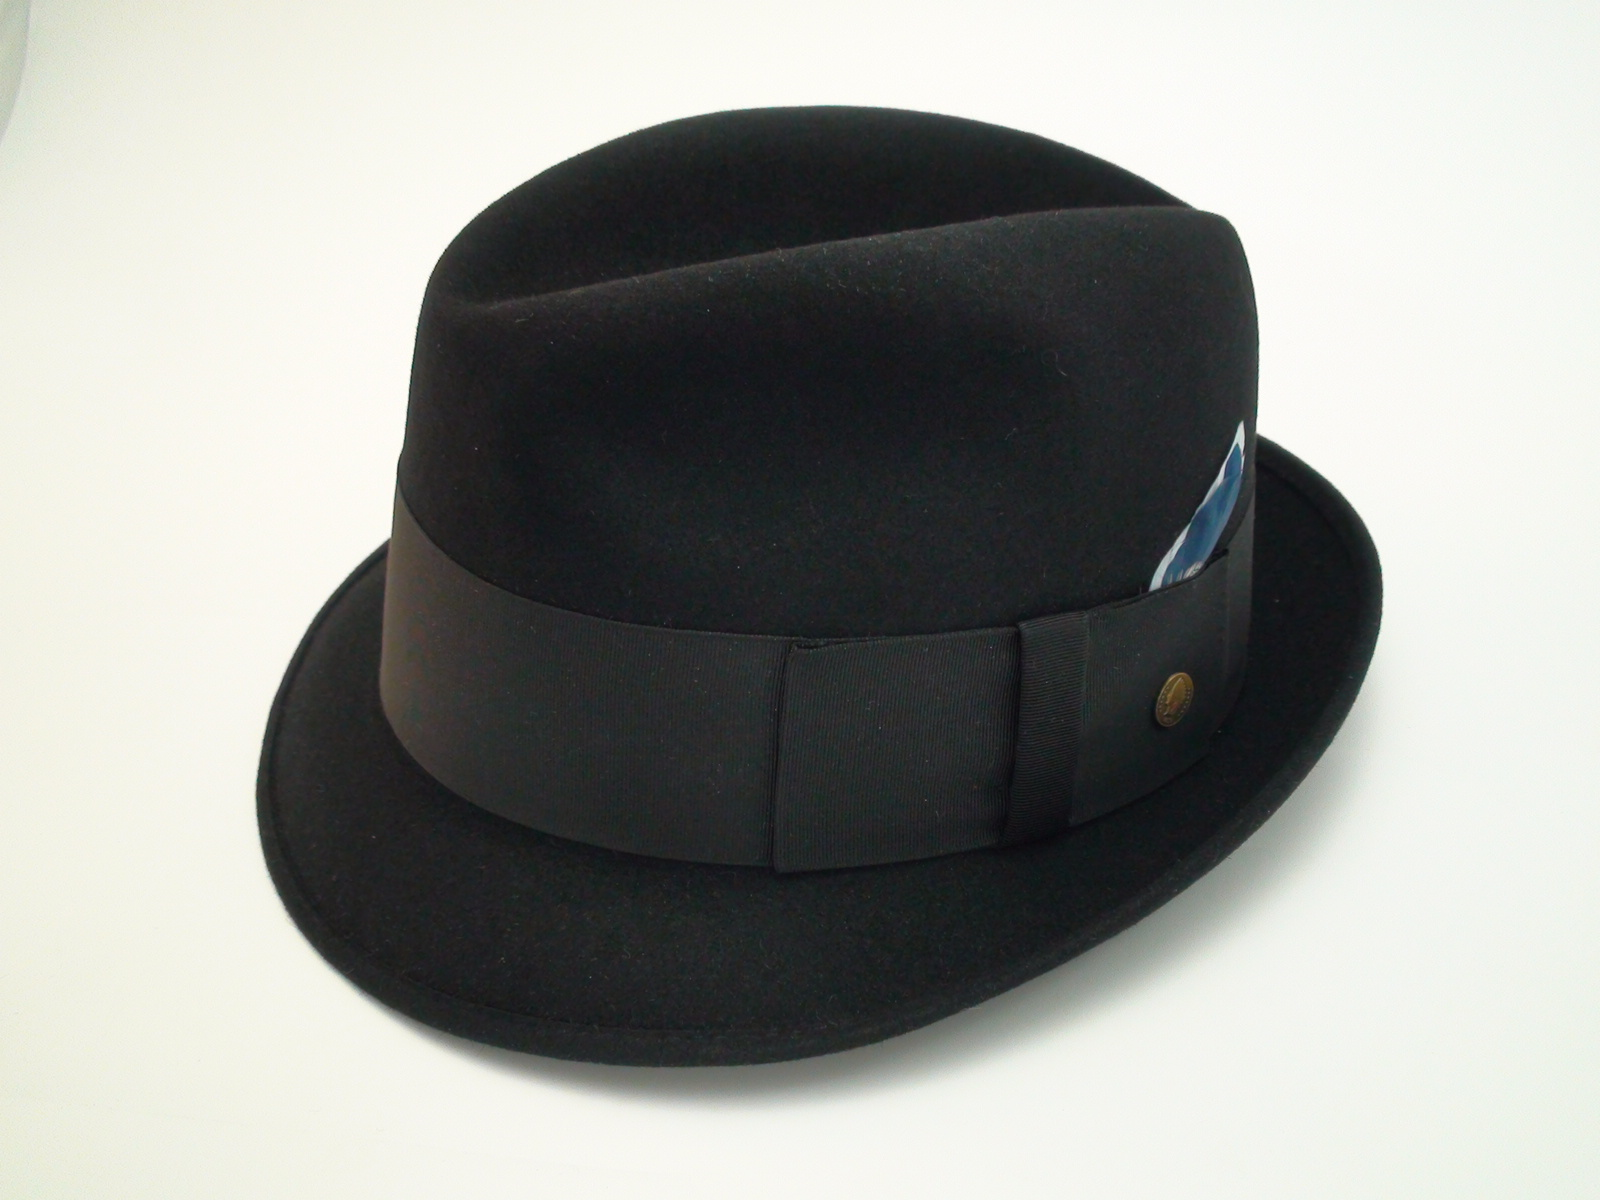 dee3900b20b Vintage Champ Hats Kasmir Finish Black Fur Felt Fedora Hat Size 7 1 8″